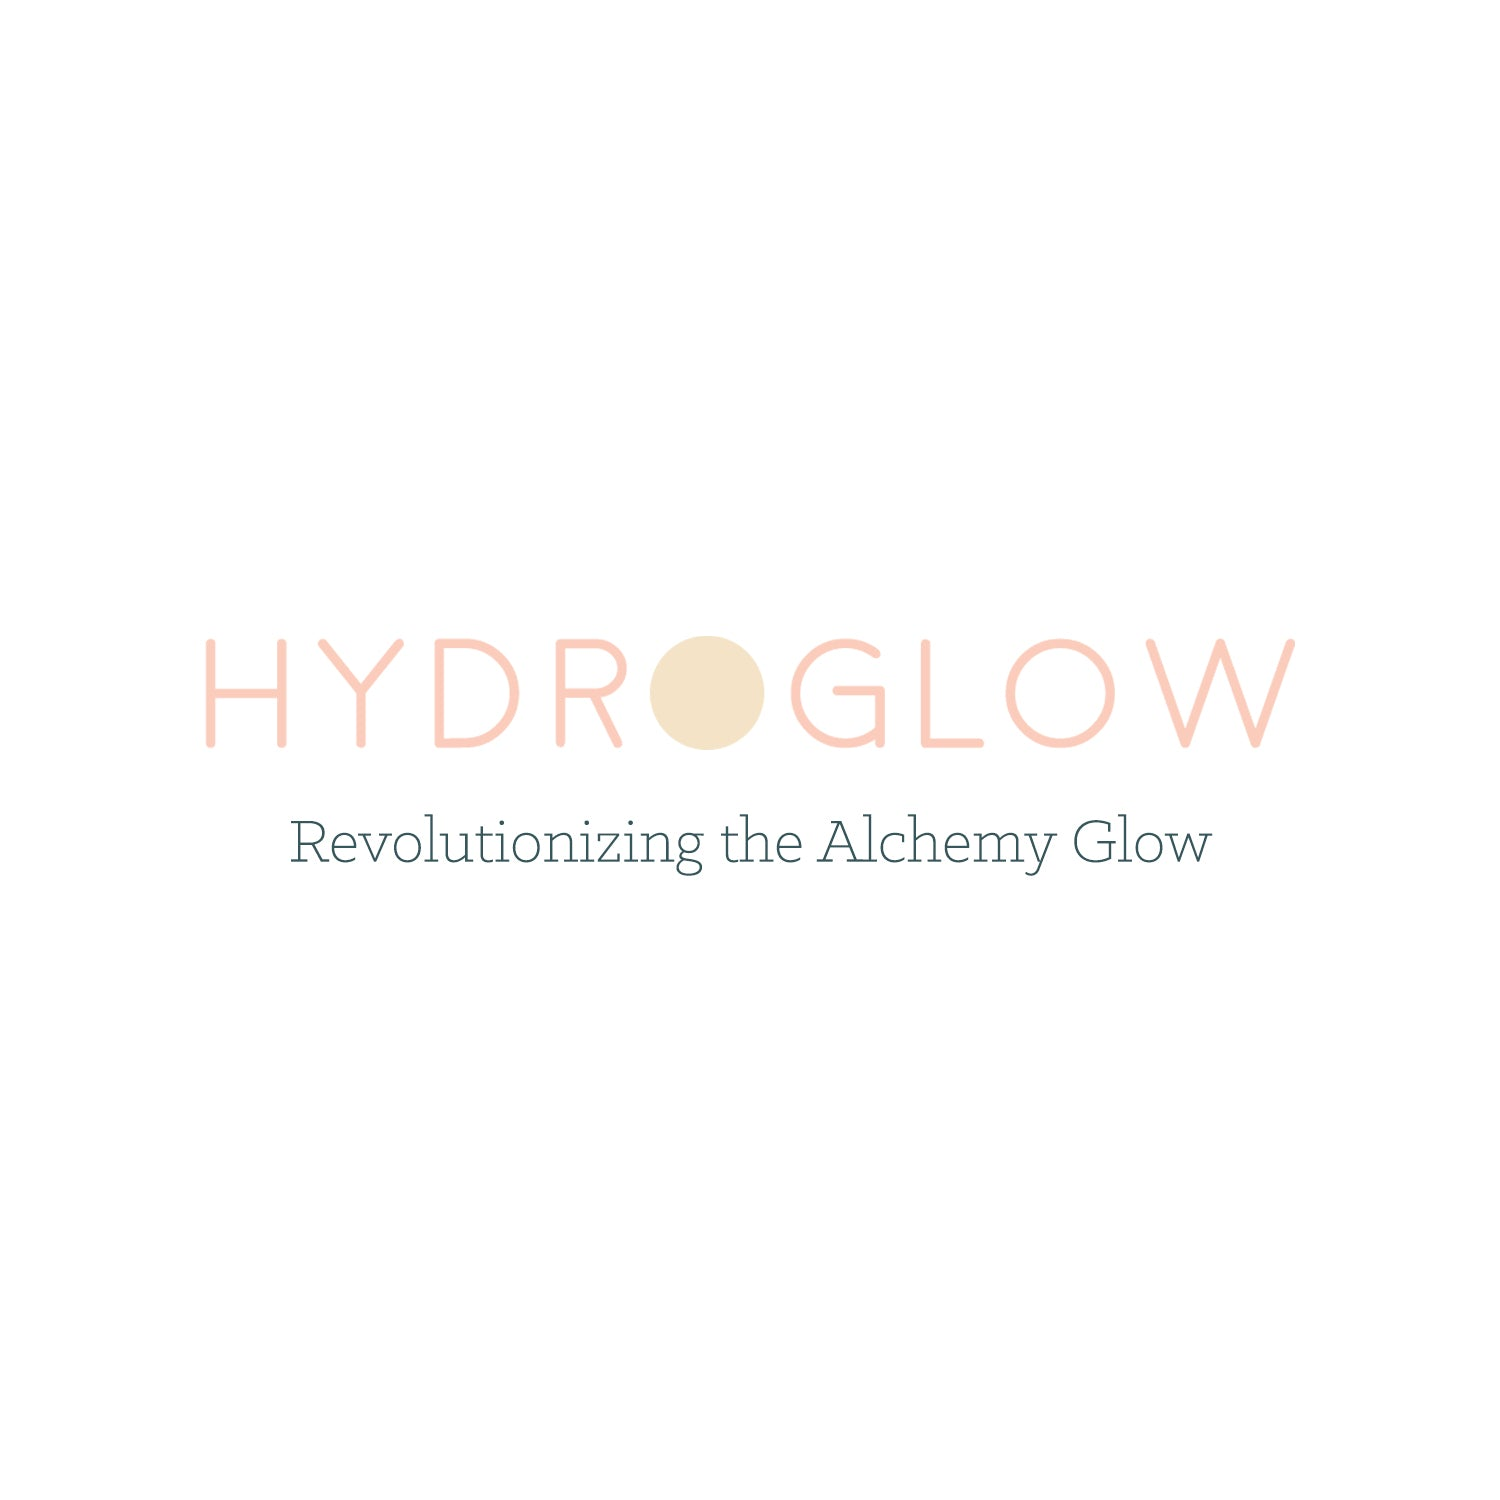 HydroGlow: Cleanse. Detoxify. Extract. Exfoliate. Hydrate.